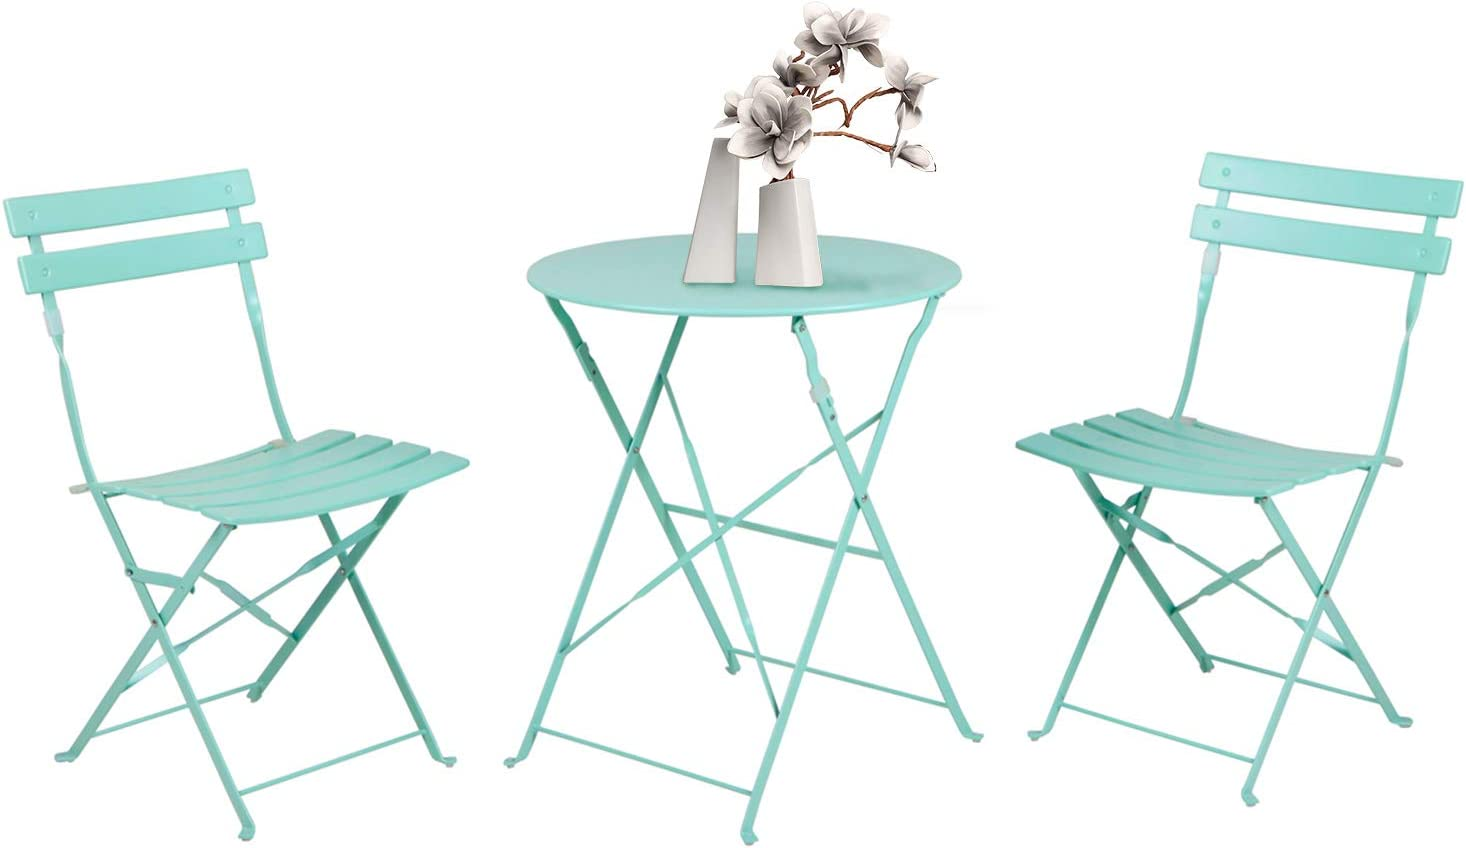 Grand patio 3pc Metal Folding Bistro Set, 2 Chairs and 1 Table, Weather-Resistant Outdoor/Indoor Conversation Set for Patio, Yard, Garden-Macaron Blue